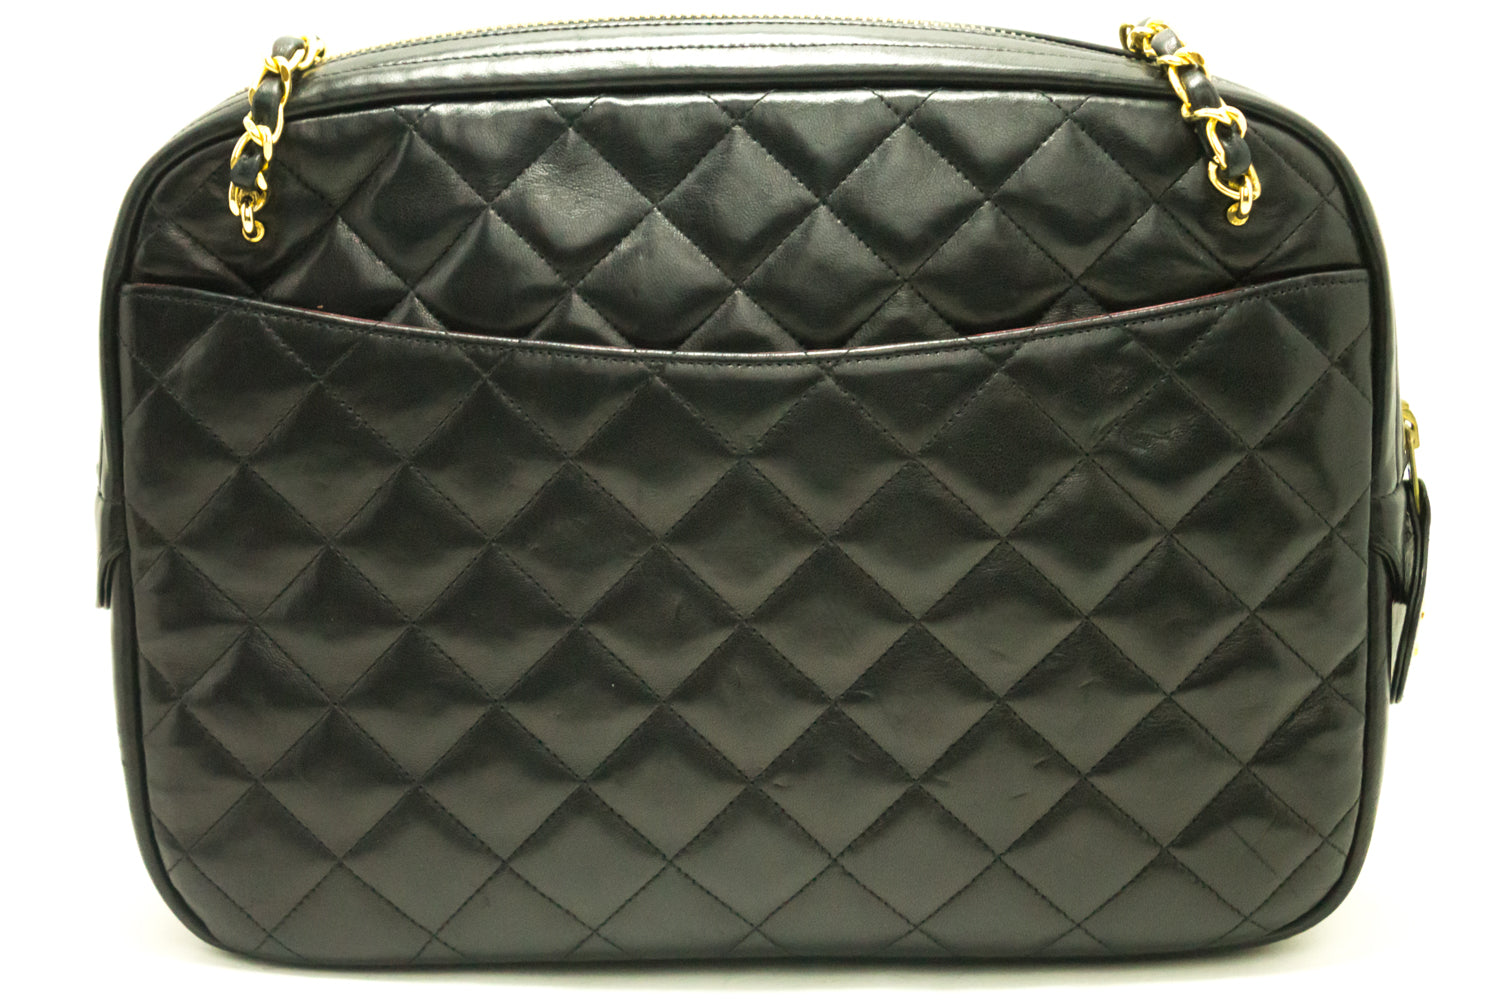 CHANEL Chain Shoulder Bag Black Leather Quilted Lambskin Office ... : leather quilted purse - Adamdwight.com